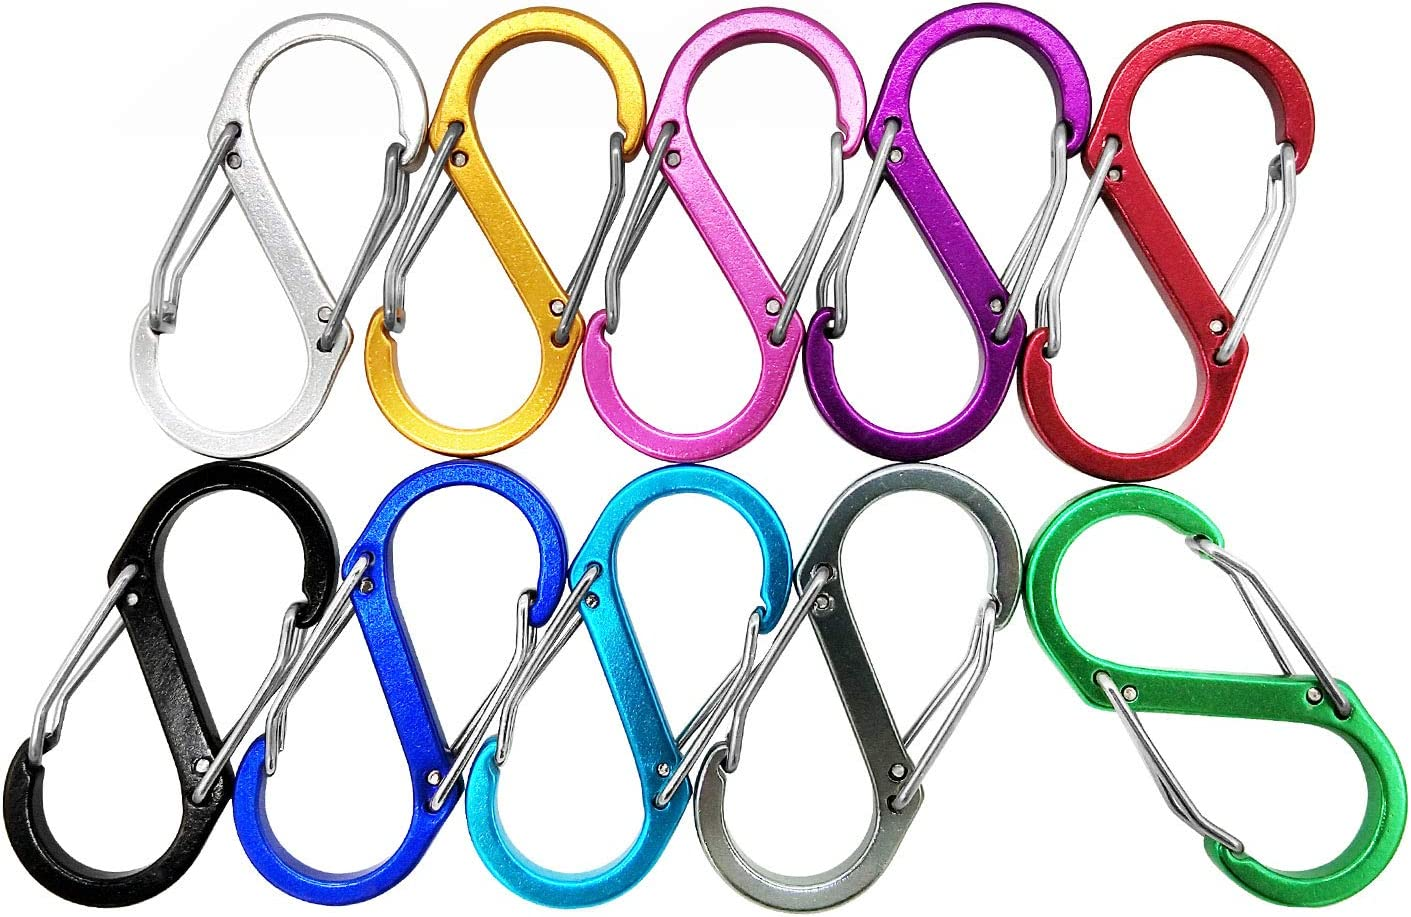 Titanium Alloy Outdoor Camping Carabiner Keychain Hanging Hook Snap Buckle B3H9